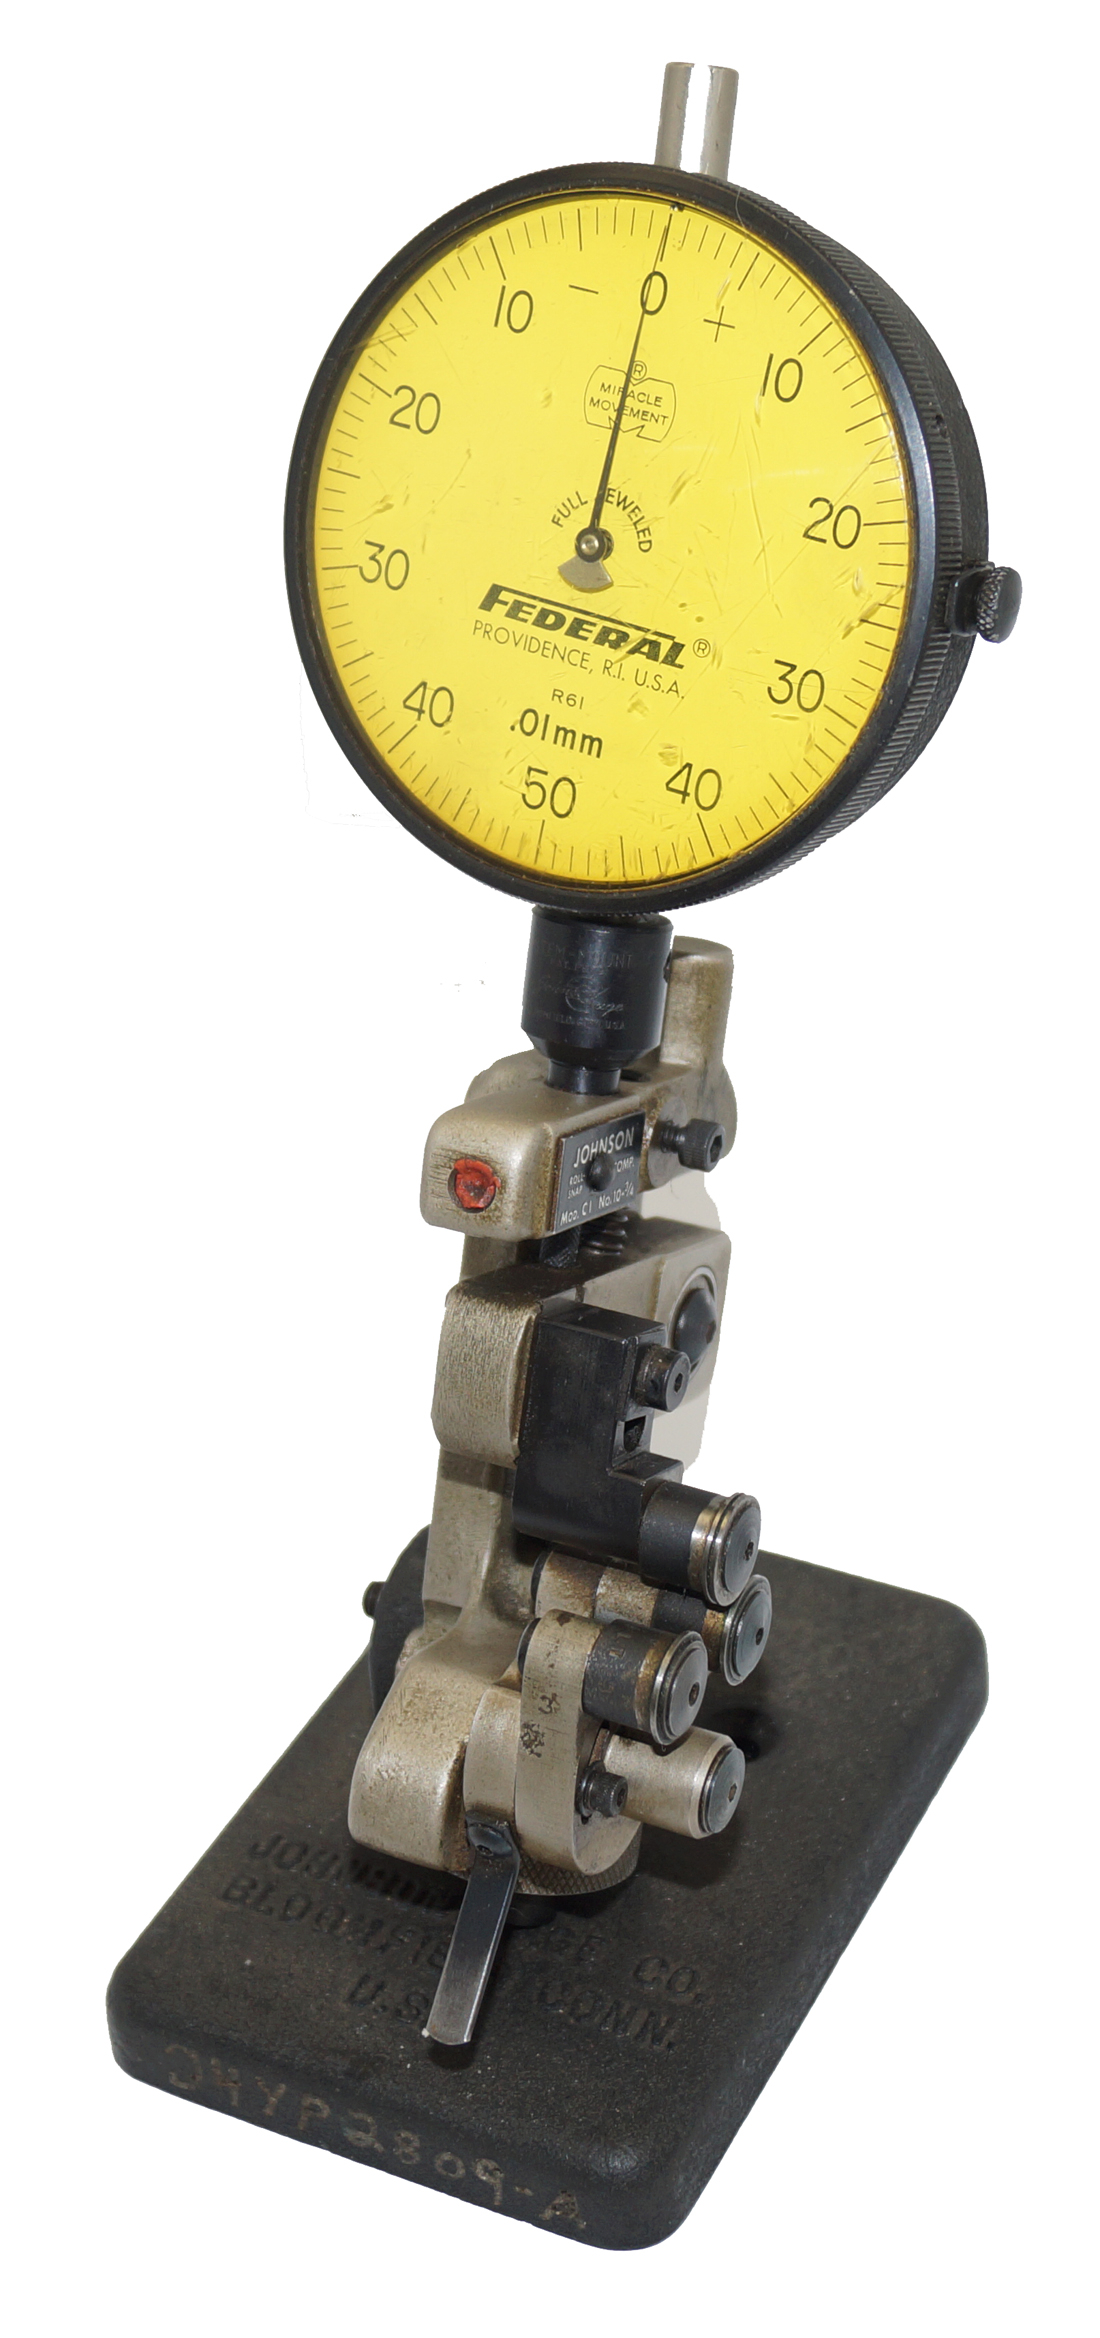 Tri-Roll Thread Gage, Johnson CI 10-3/4 Snap-Roll